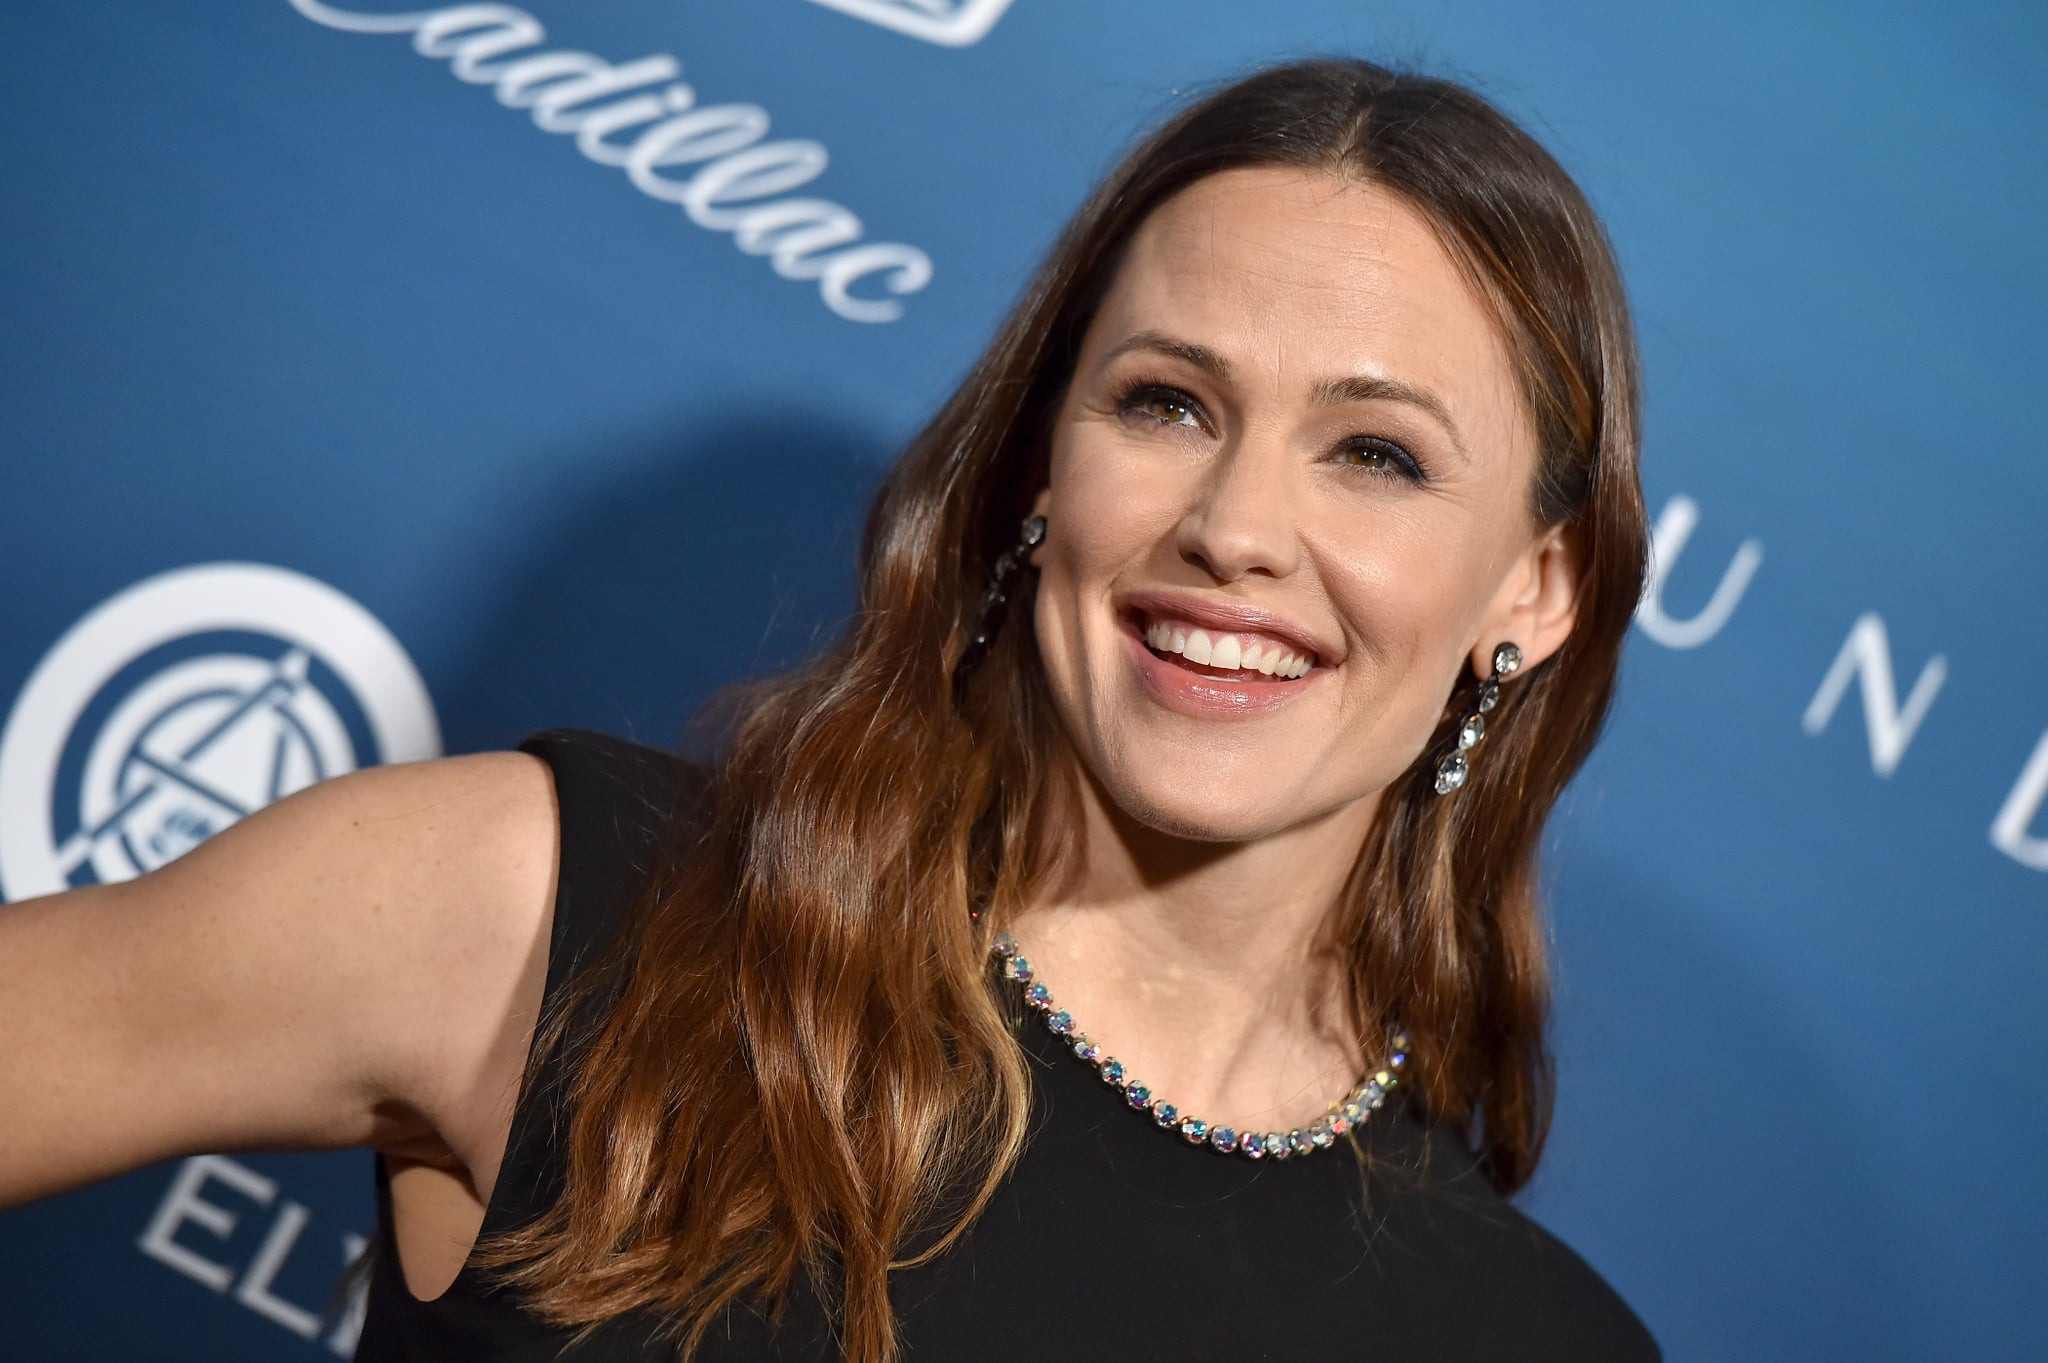 LOS ANGELES, CA - JANUARY 05:  Jennifer Garner attends The Art of Elysium's 12th Annual Celebration - Heaven, on January 5, 2019 in Los Angeles, California.  (Photo by Axelle/Bauer-Griffin/FilmMagic)